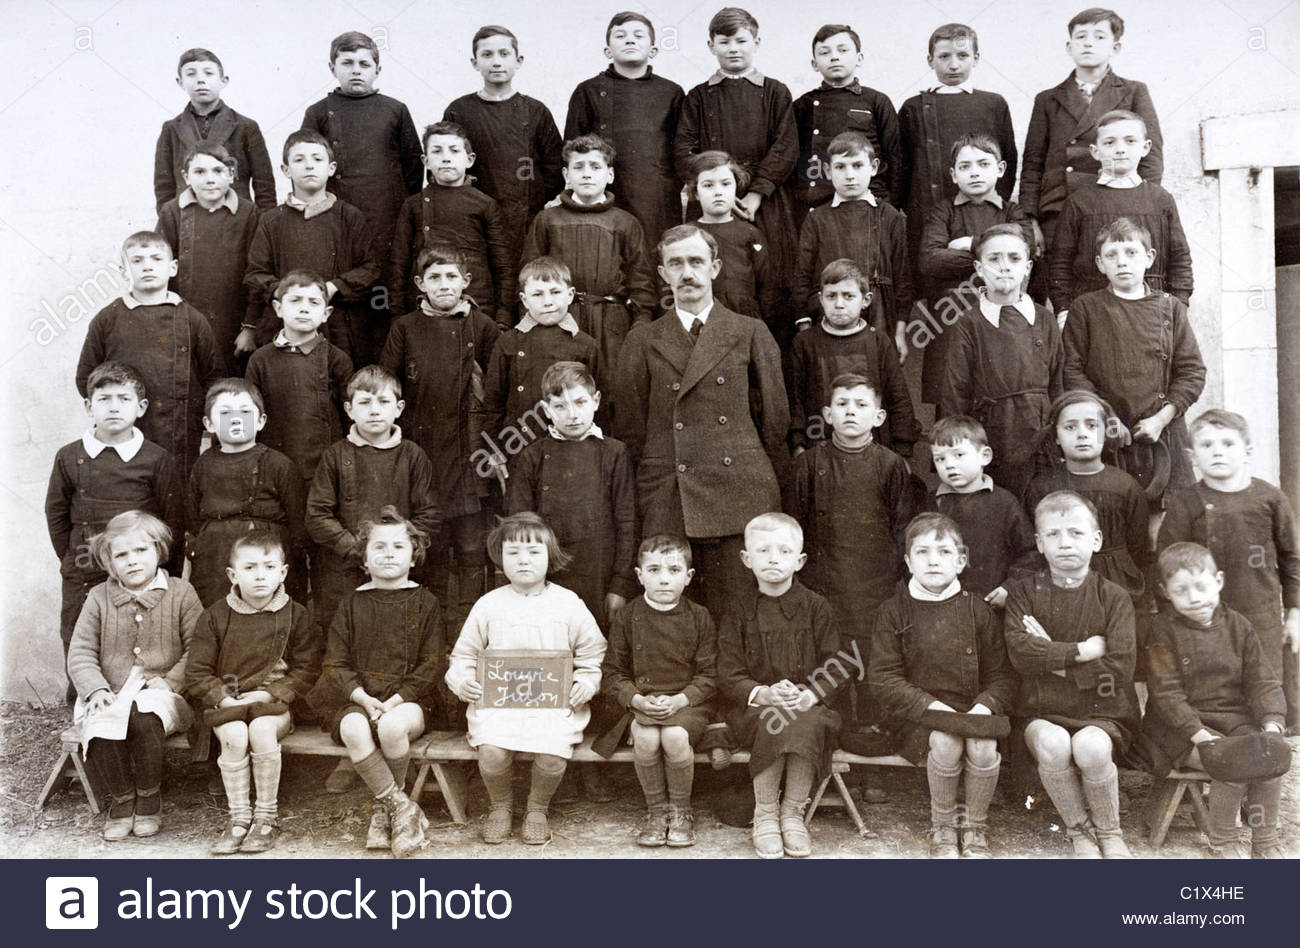 vintage formal group photo of school children with teacher - Stock Image